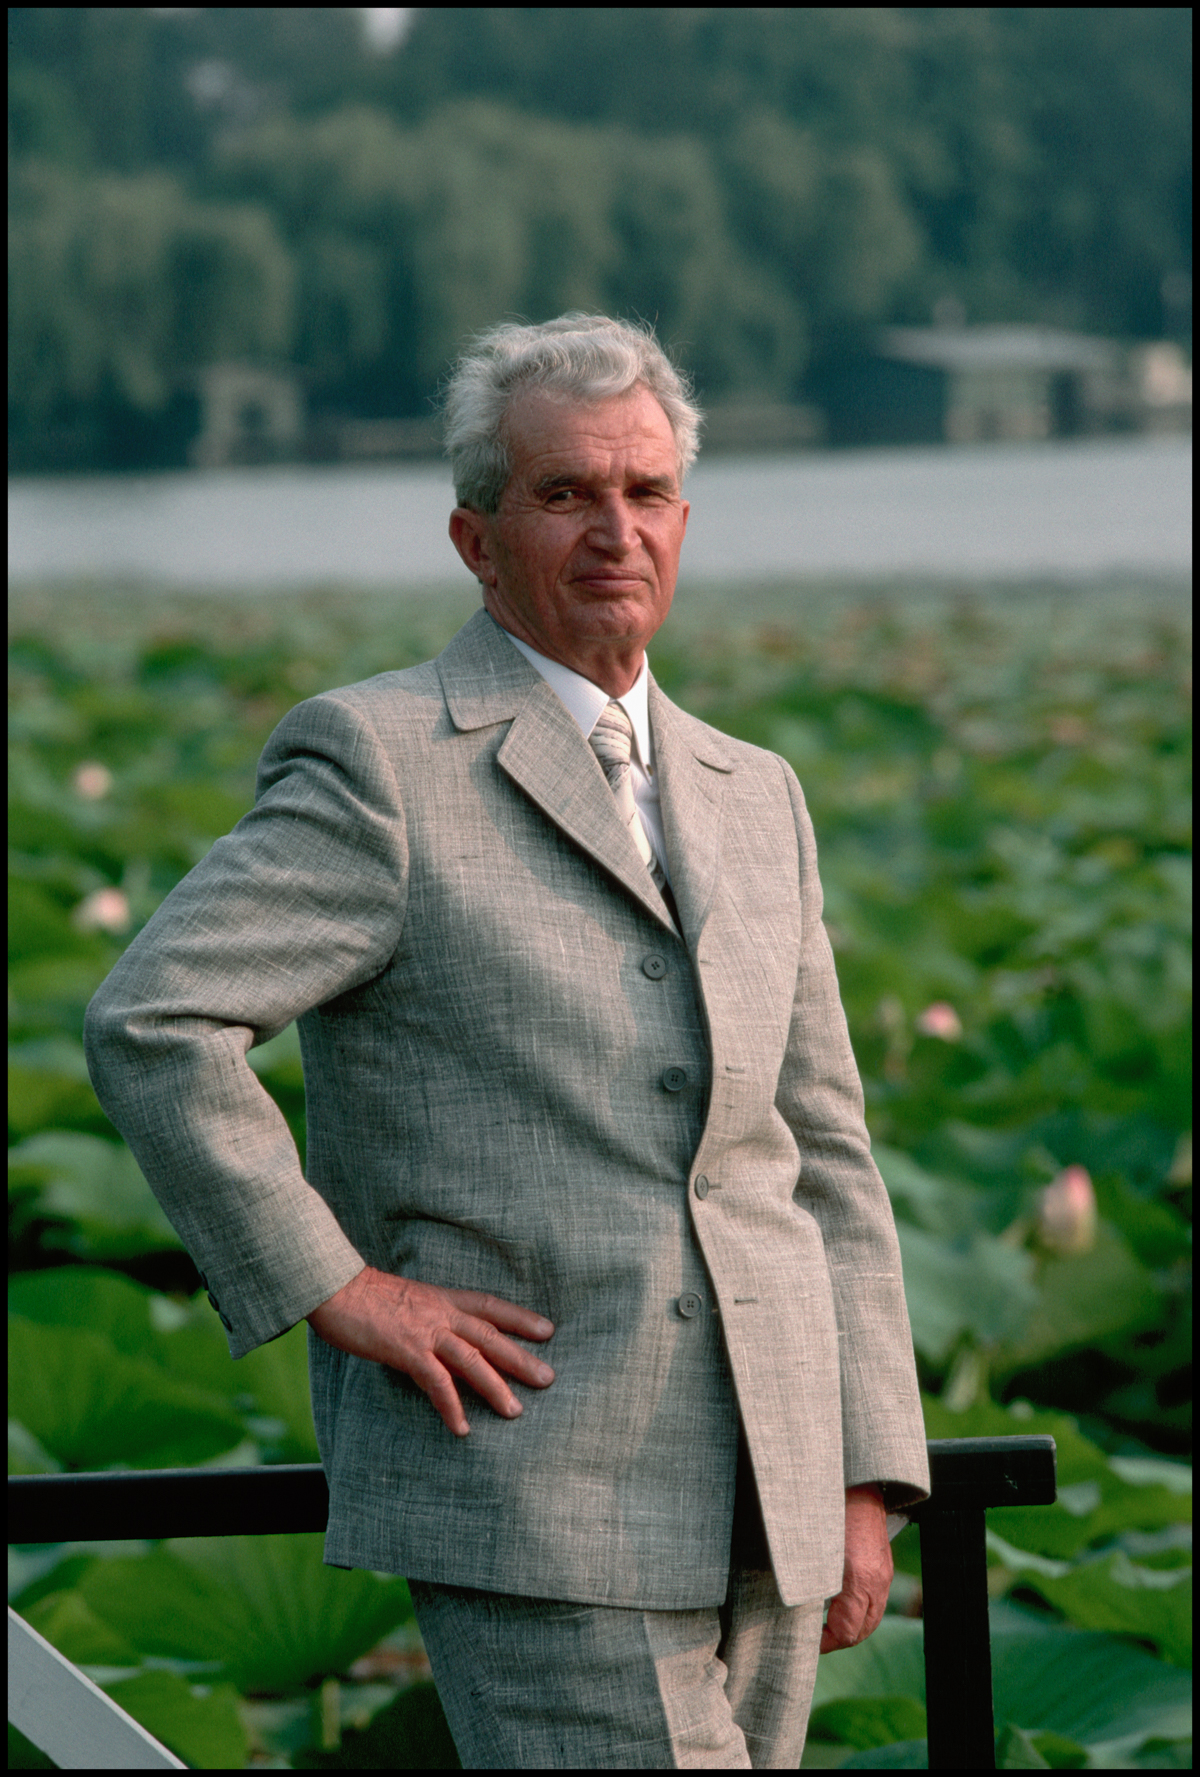 August 1989, Bucharest, Romania --- Romanian dictator Nicolae Ceausescu poses beside a pond blooming with water lilies at his villa near Bucharest in August 1989.